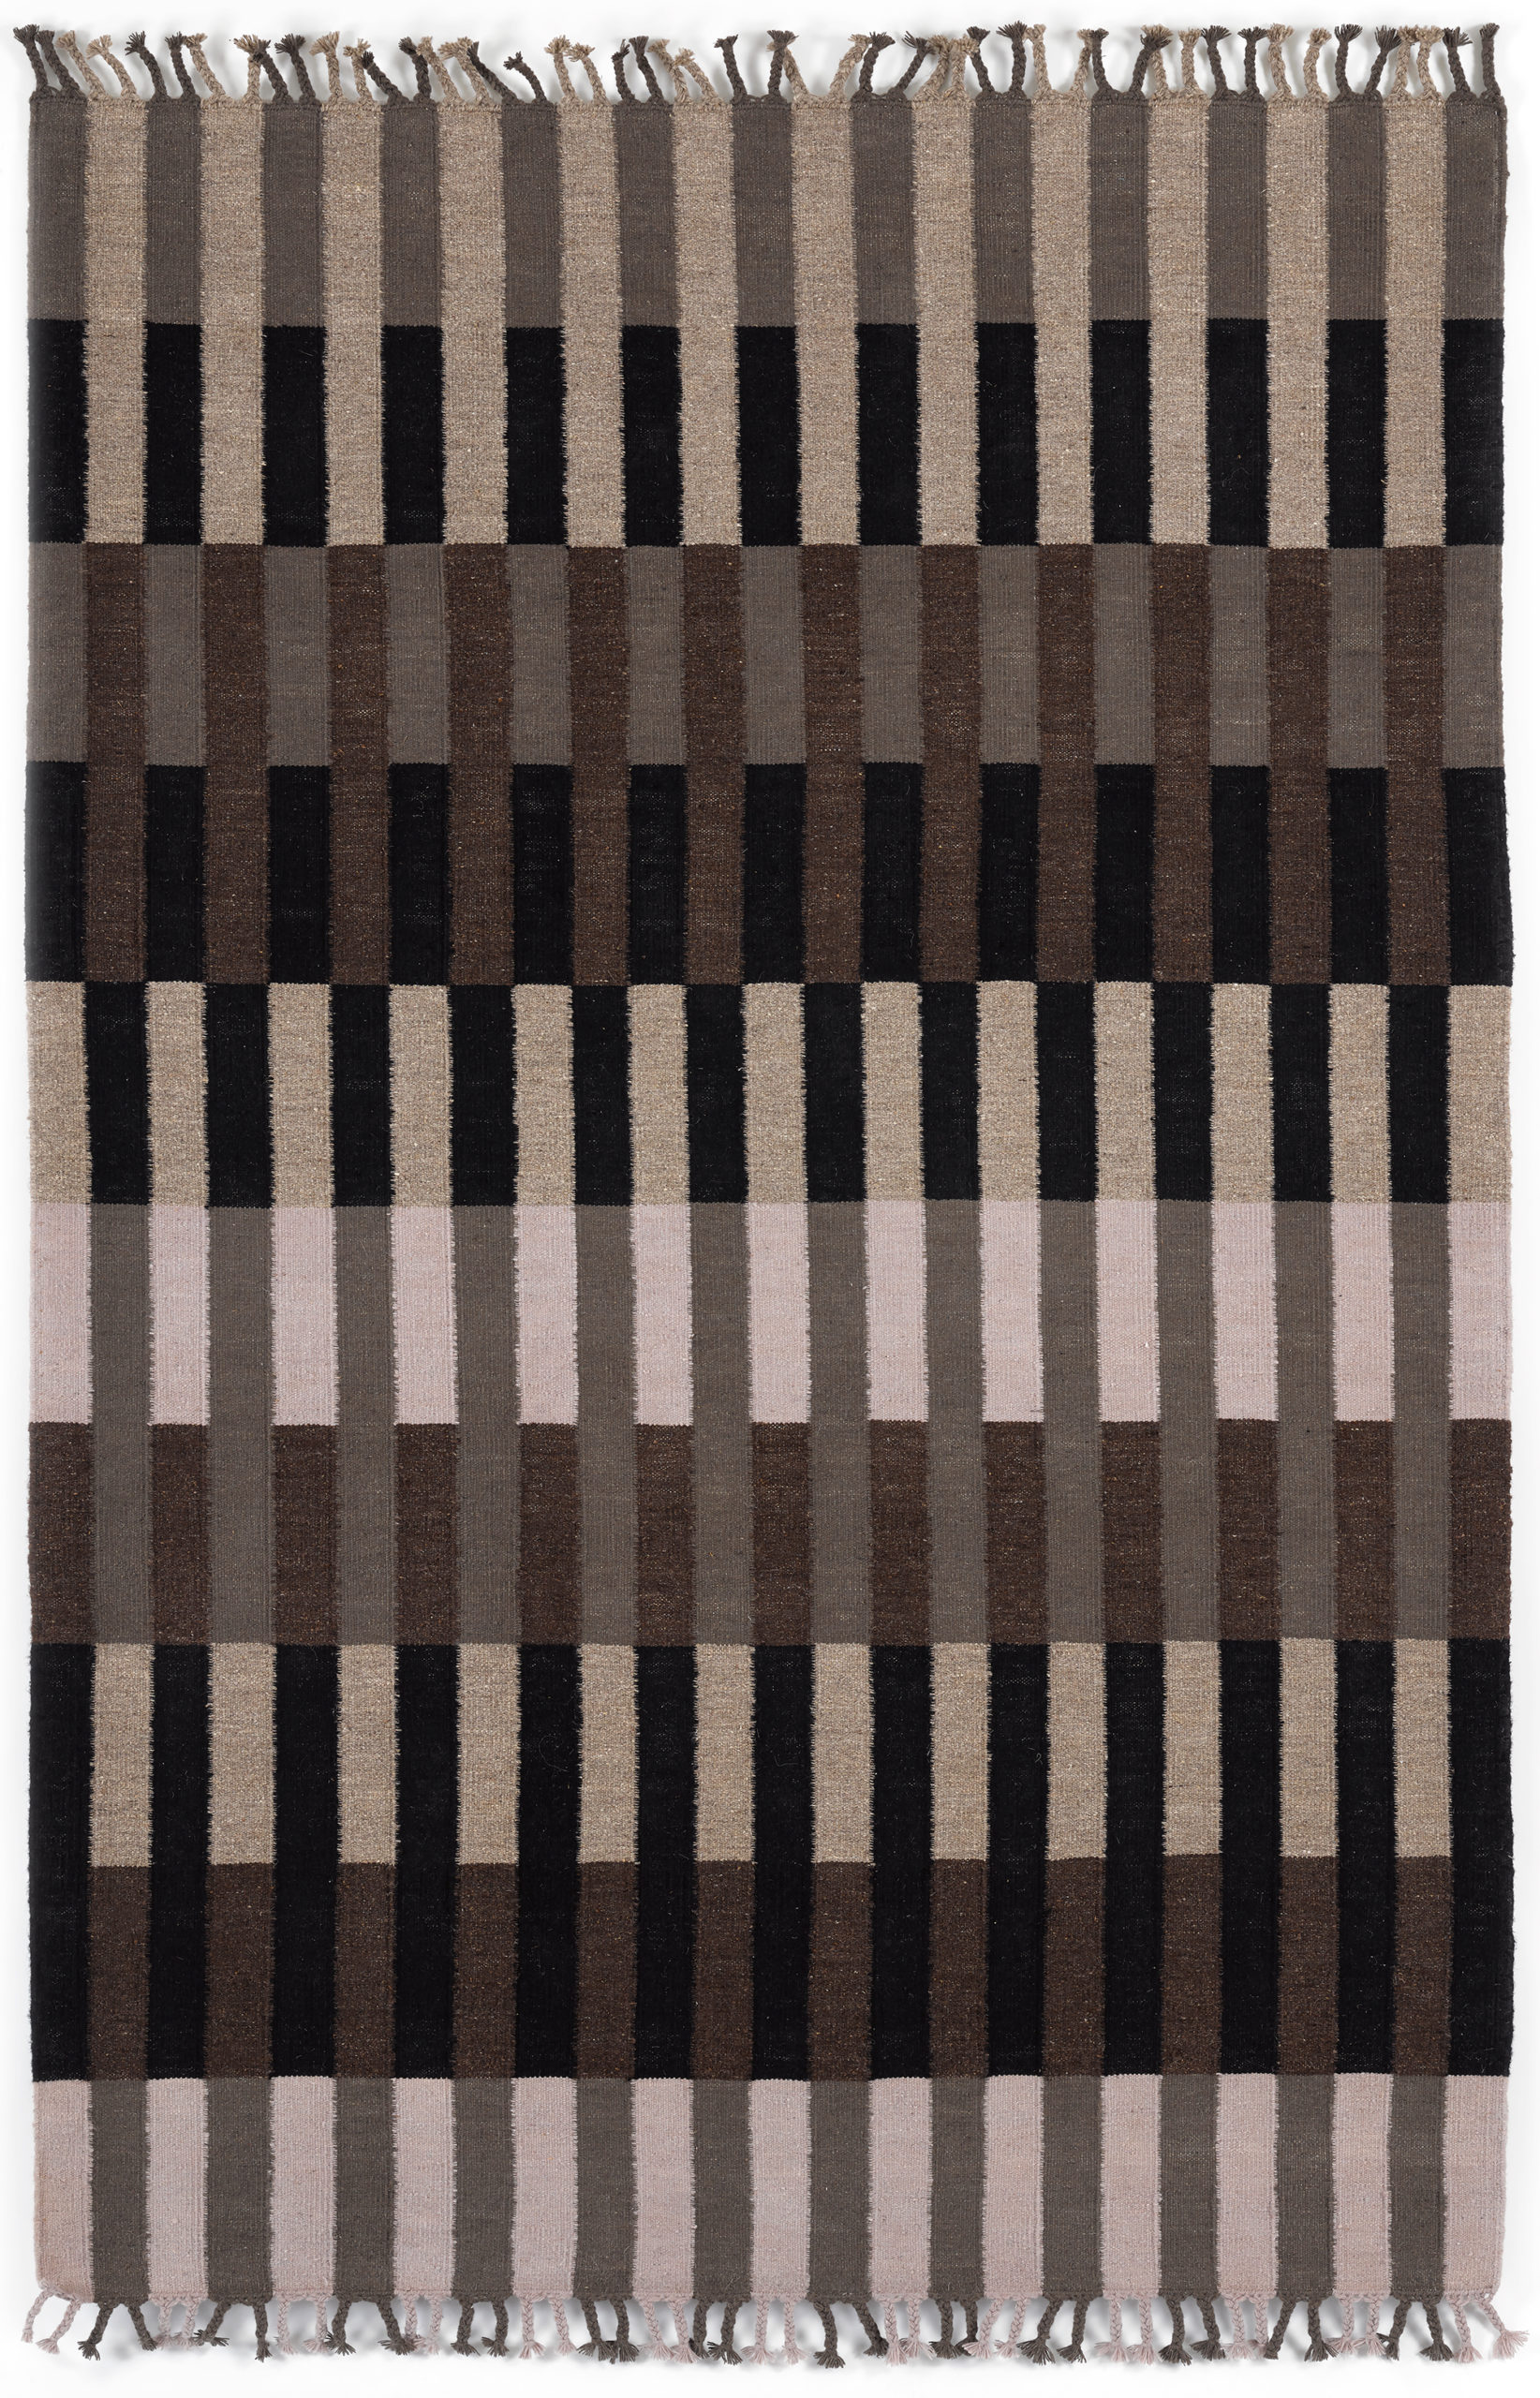 crosby_street_studios_products_CSS_Lineage_Ruma_FullRug-scaled-1